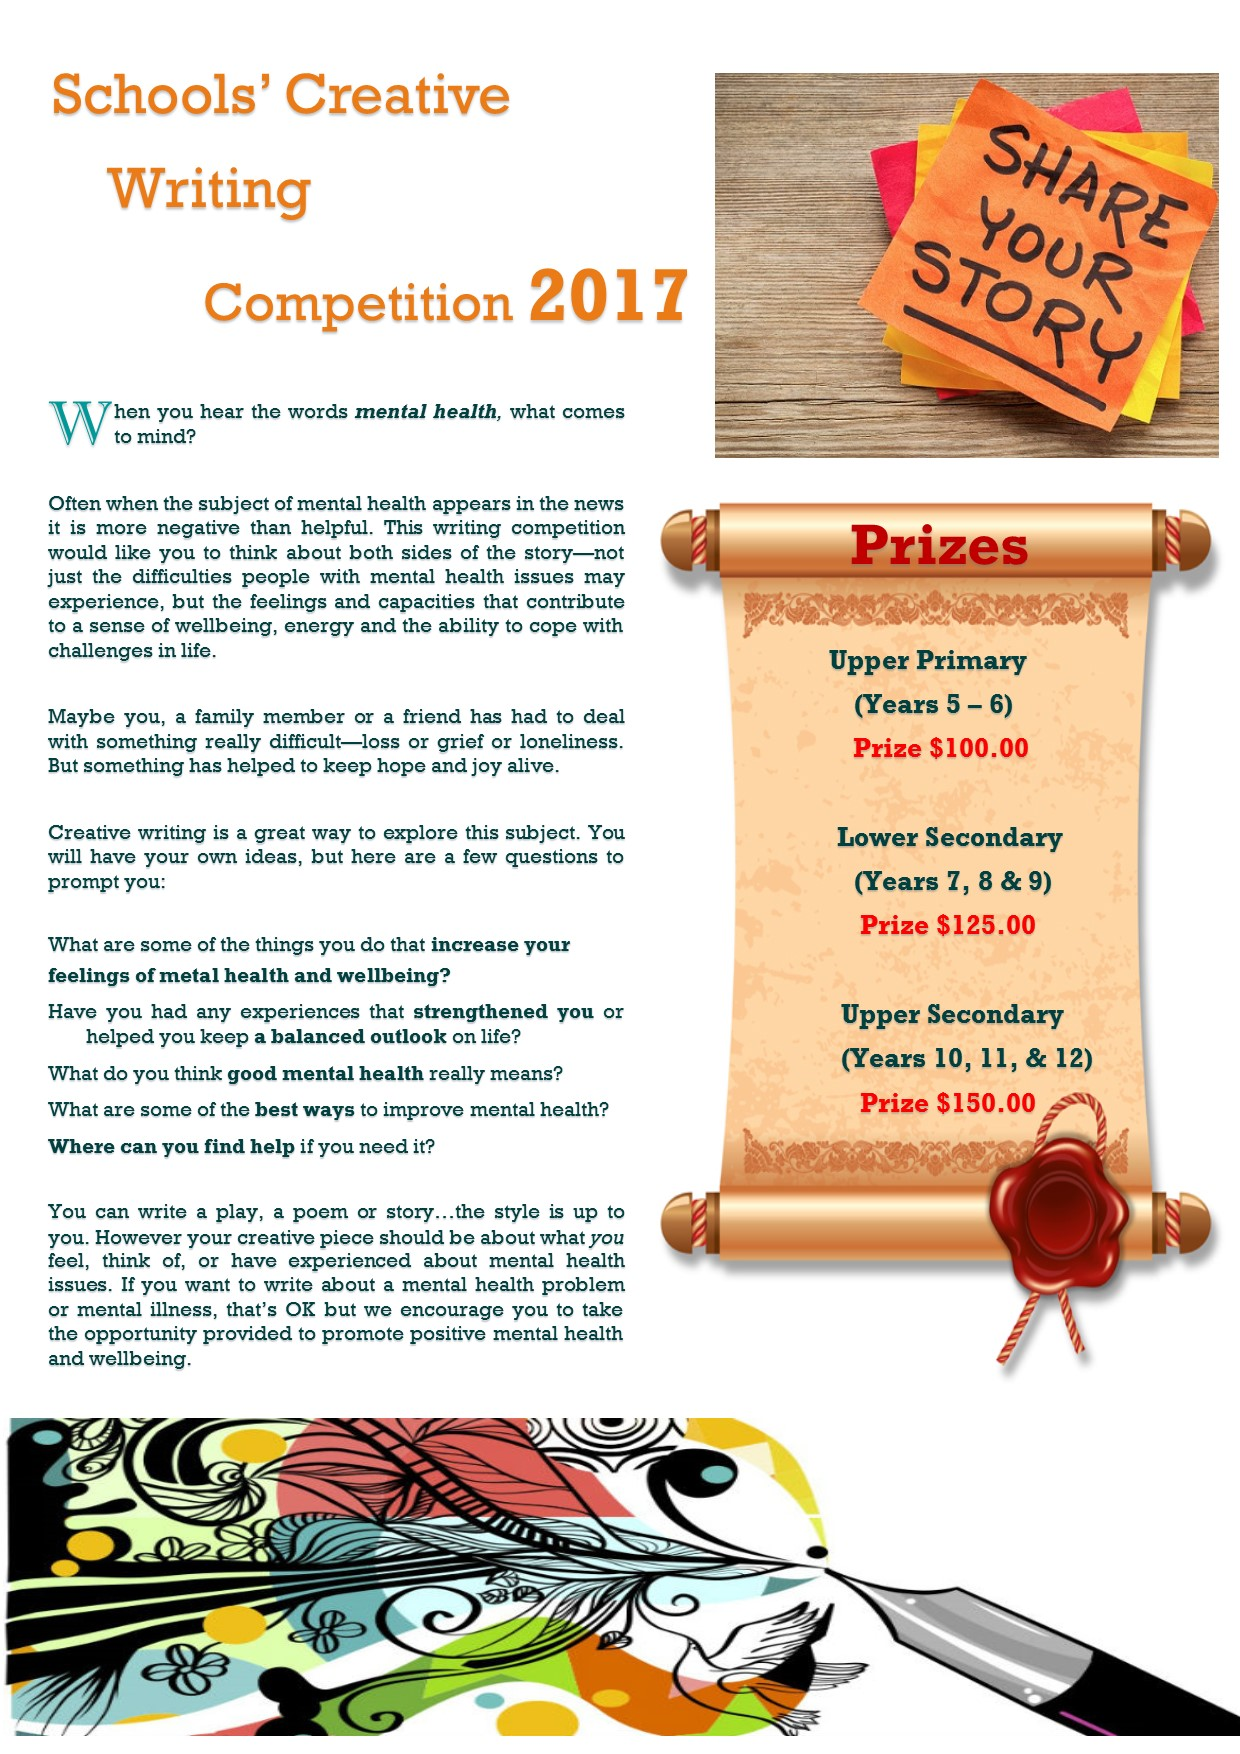 Healing Words Poetry Competition Celebrates Role of Creative